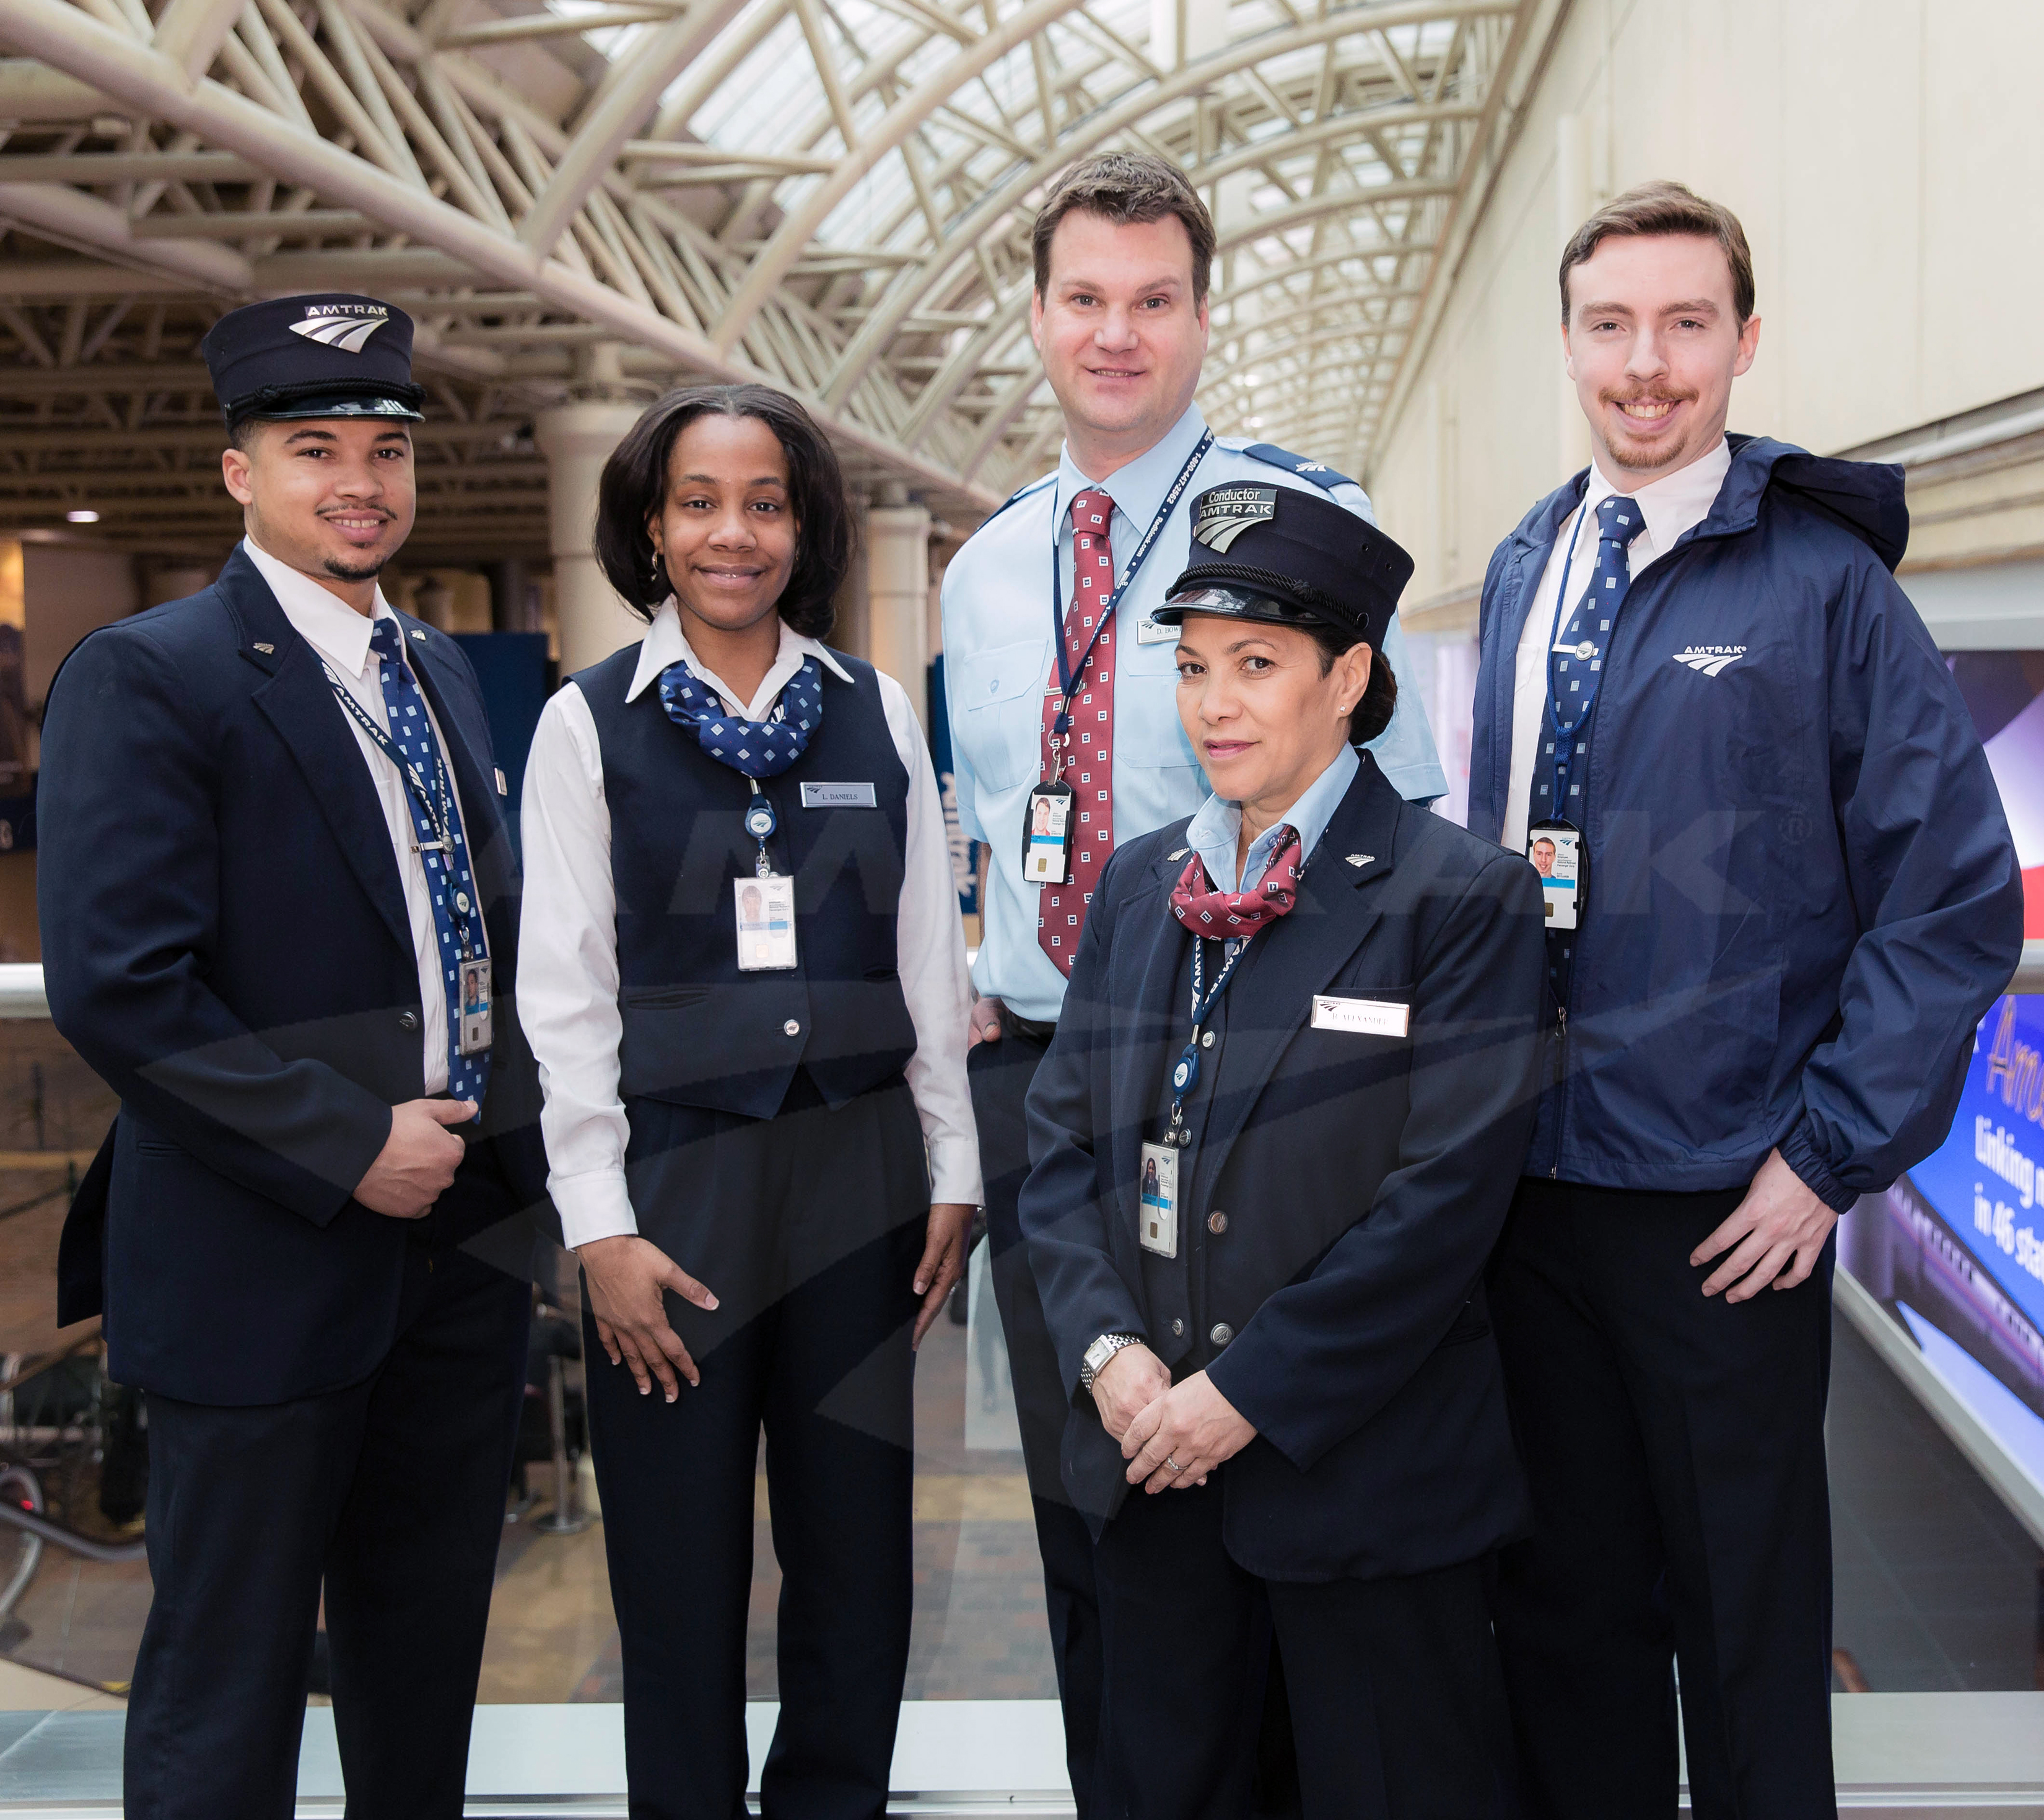 Onboard And Station Services Employees Modeling Uniforms